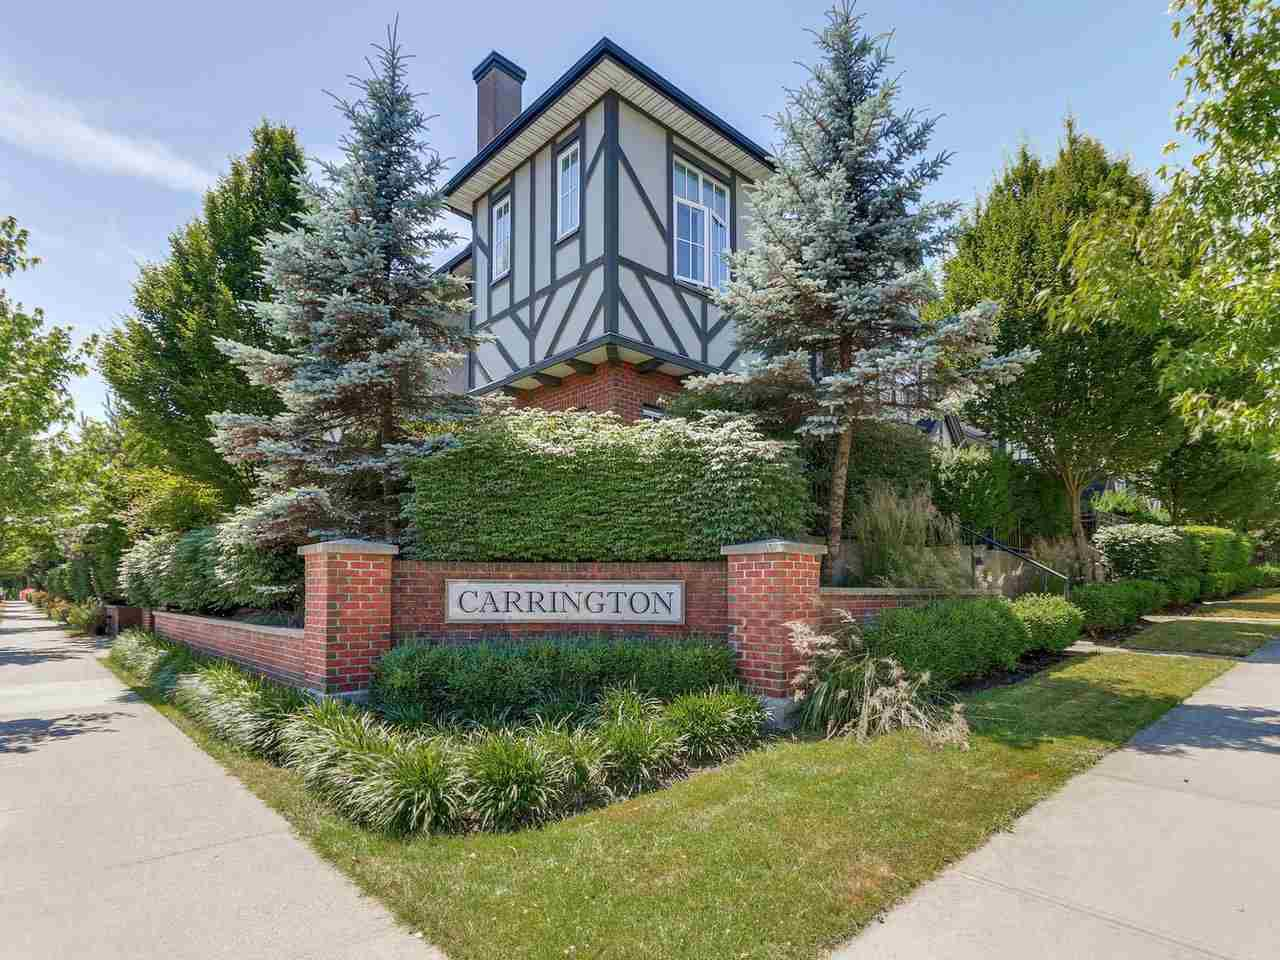 """Main Photo: 6181 OAK Street in Vancouver: South Granville Townhouse for sale in """"CARRINGTON"""" (Vancouver West)  : MLS®# R2295526"""